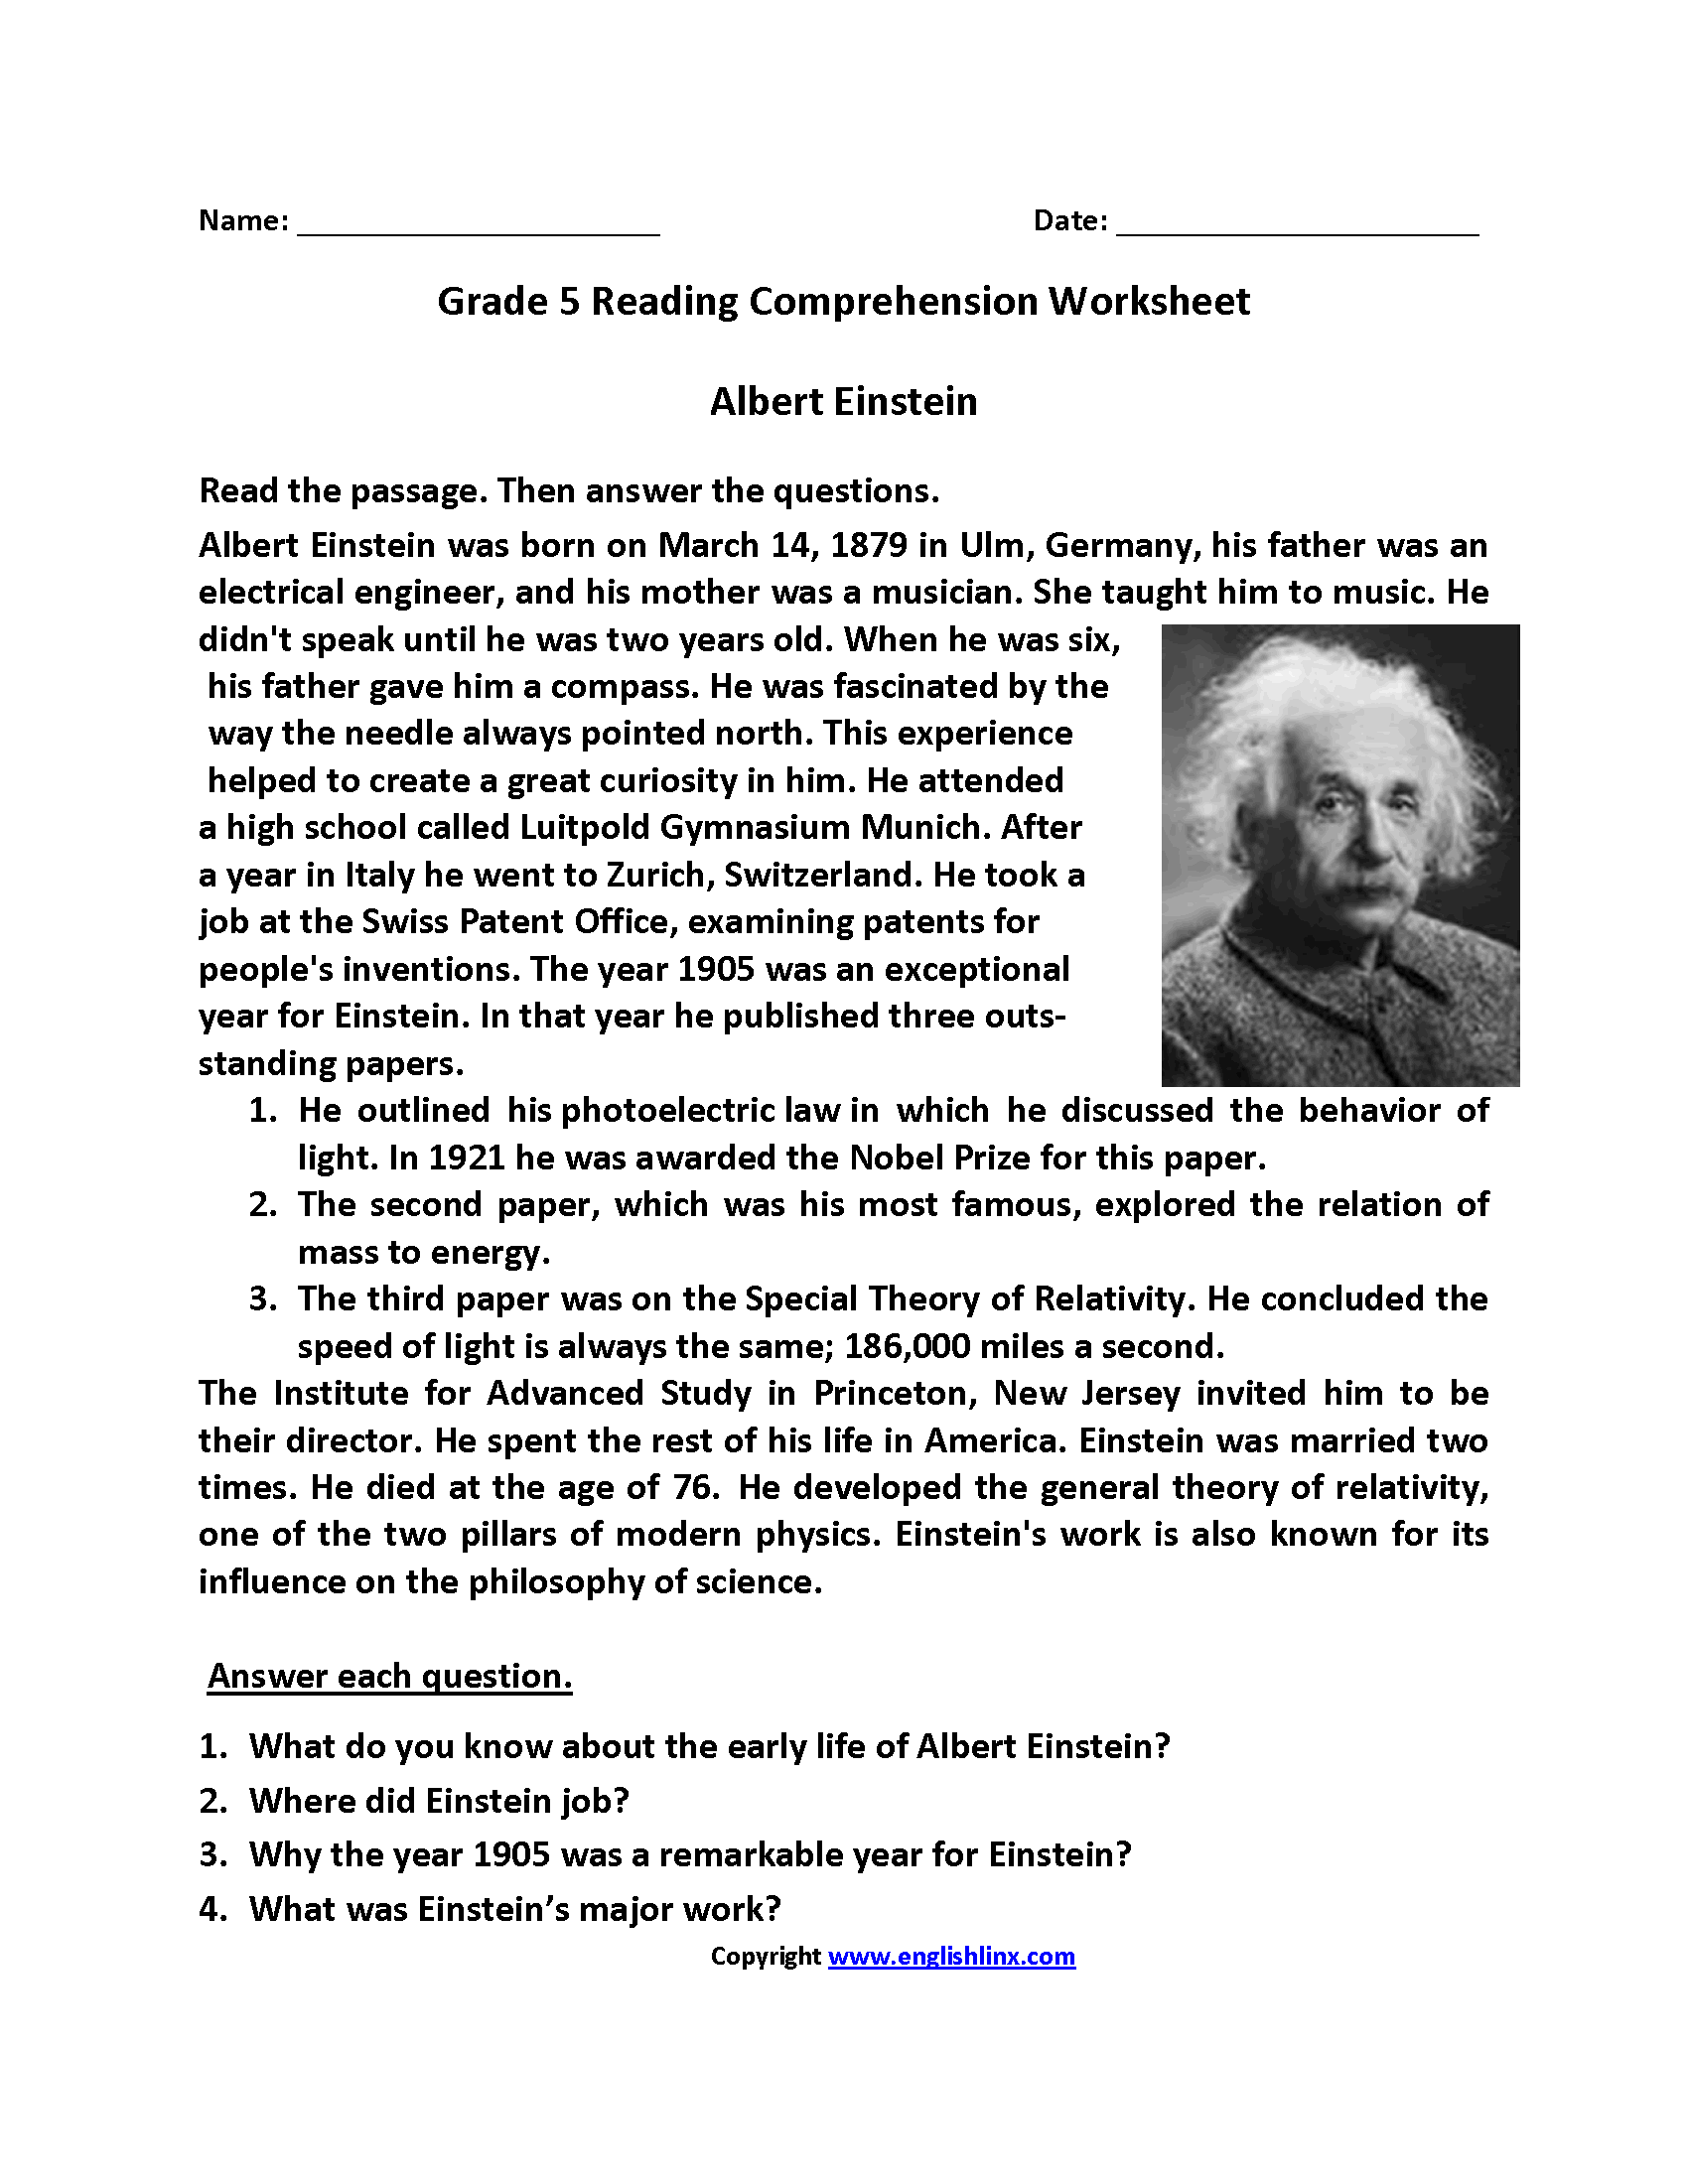 Albert Einstein Fifth Grade Reading Worksheets With